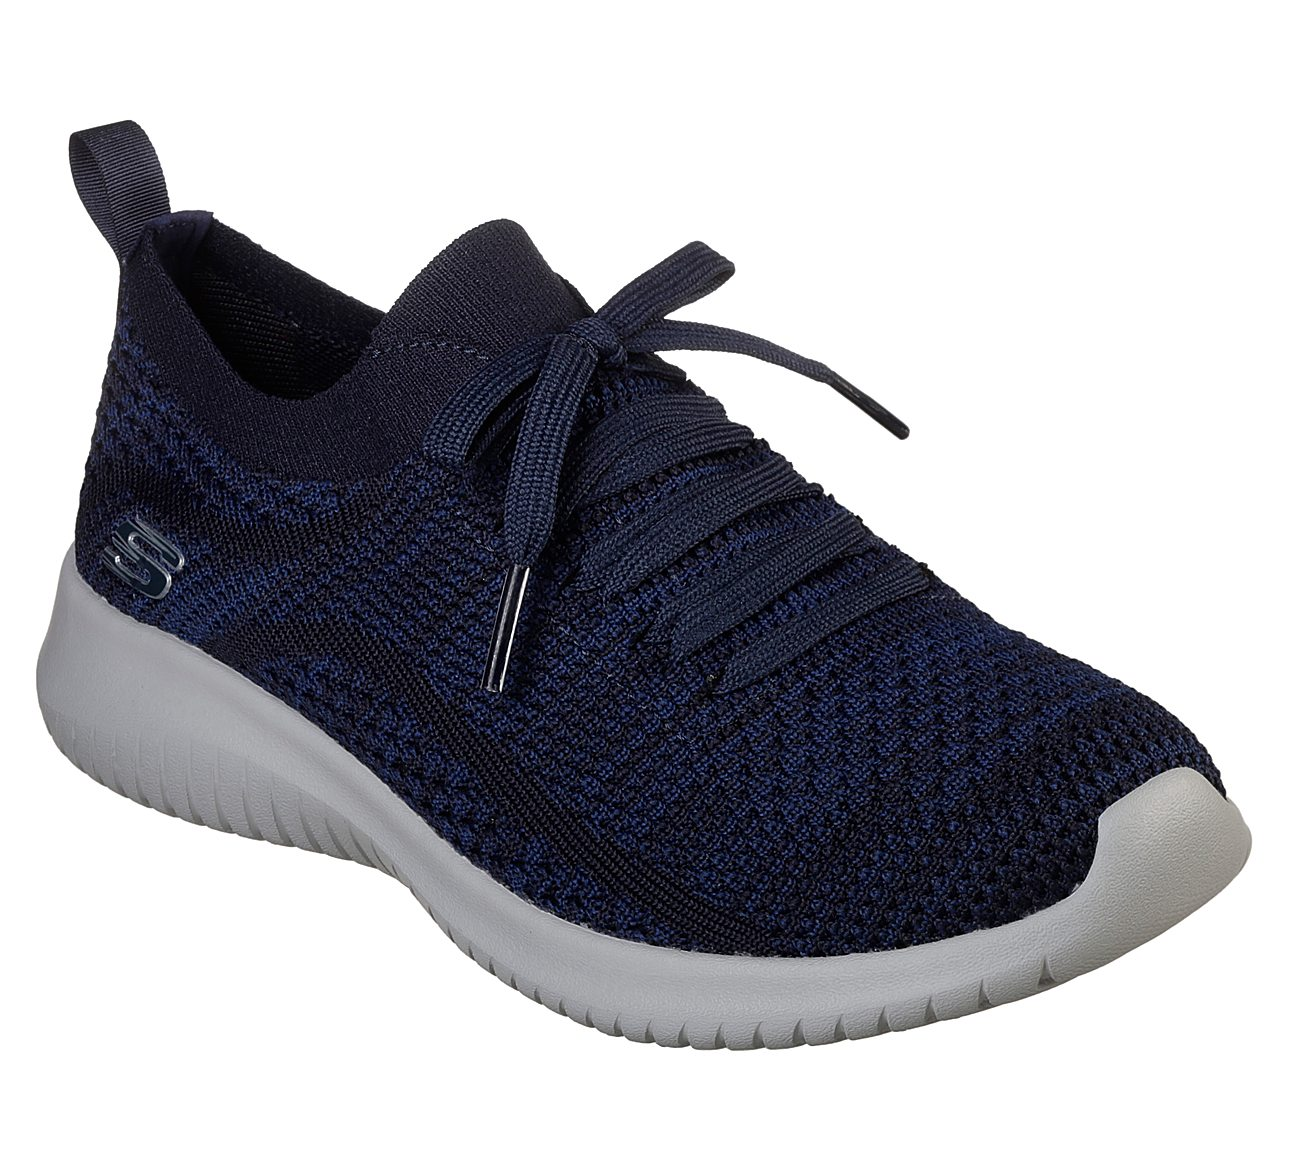 Statements Sport Shoes Only $65.00